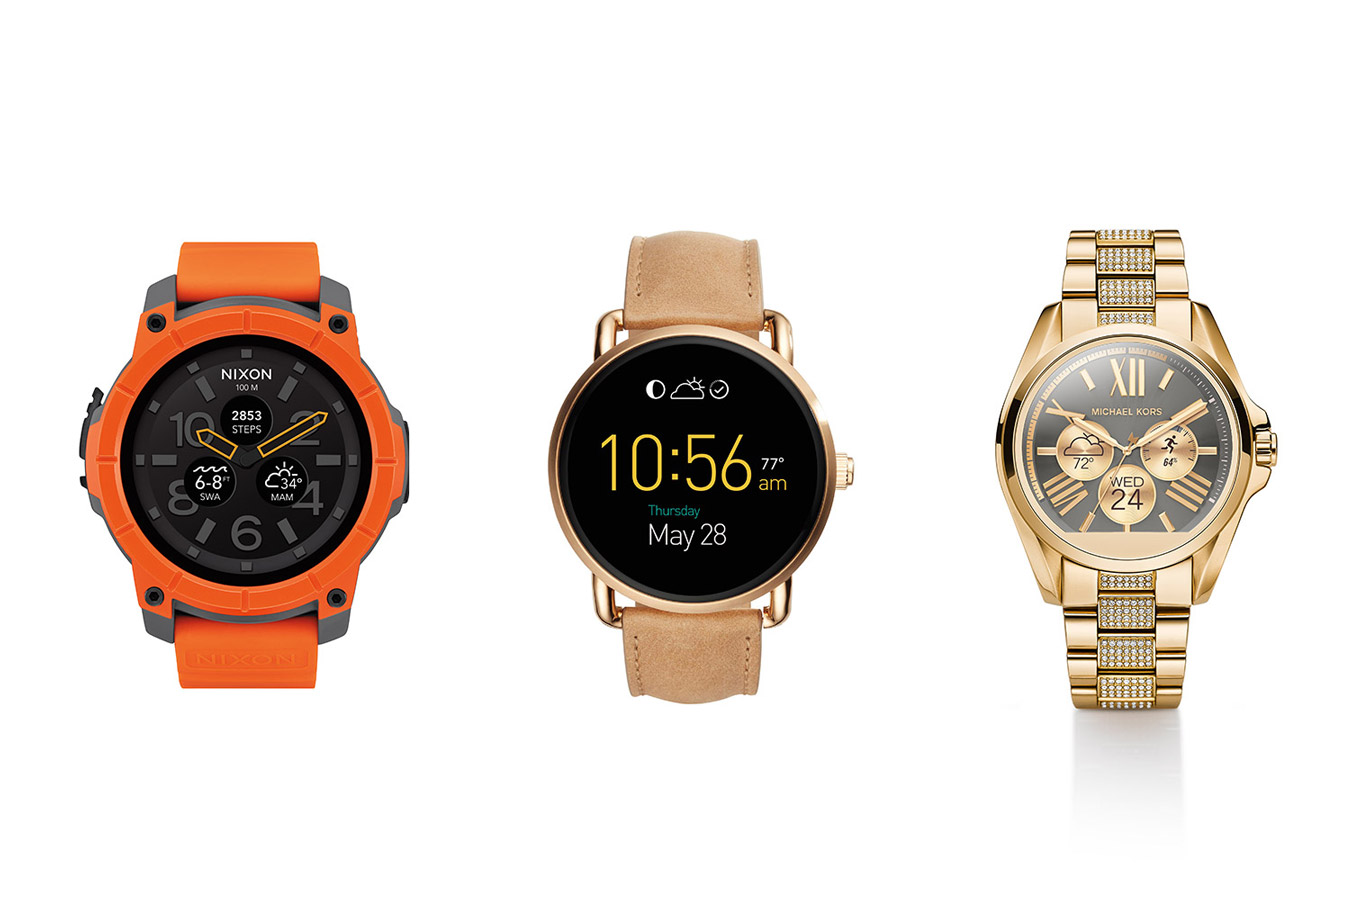 michael kors fossil and nixon android wear watches